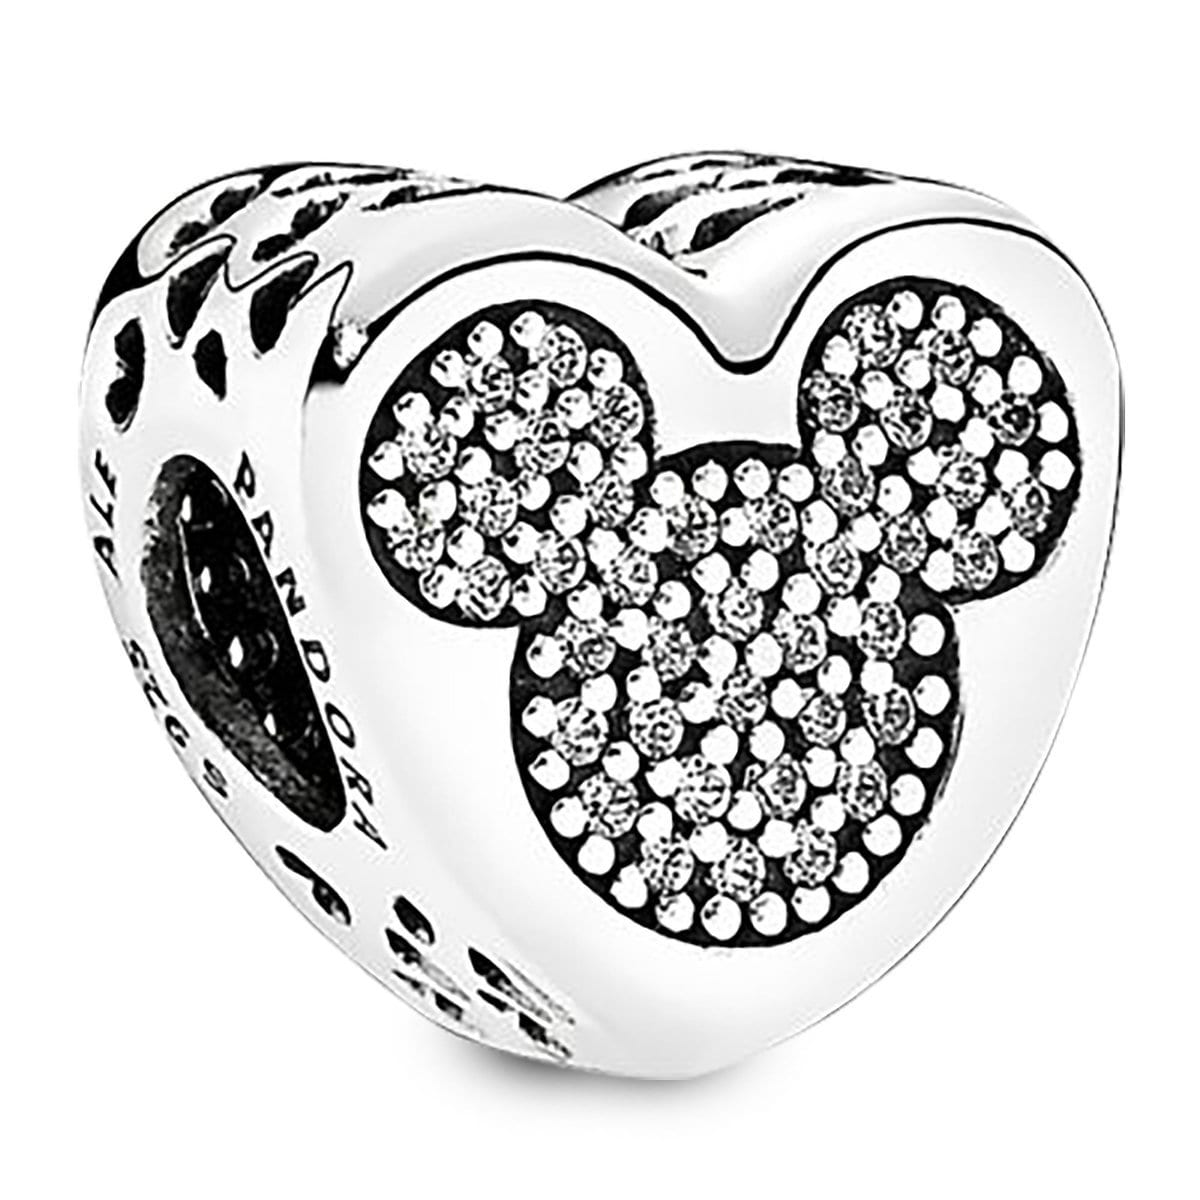 31103e1d5 Product Image of Mickey and Minnie Mouse Icon Heart Charm by Pandora  Jewelry # 1